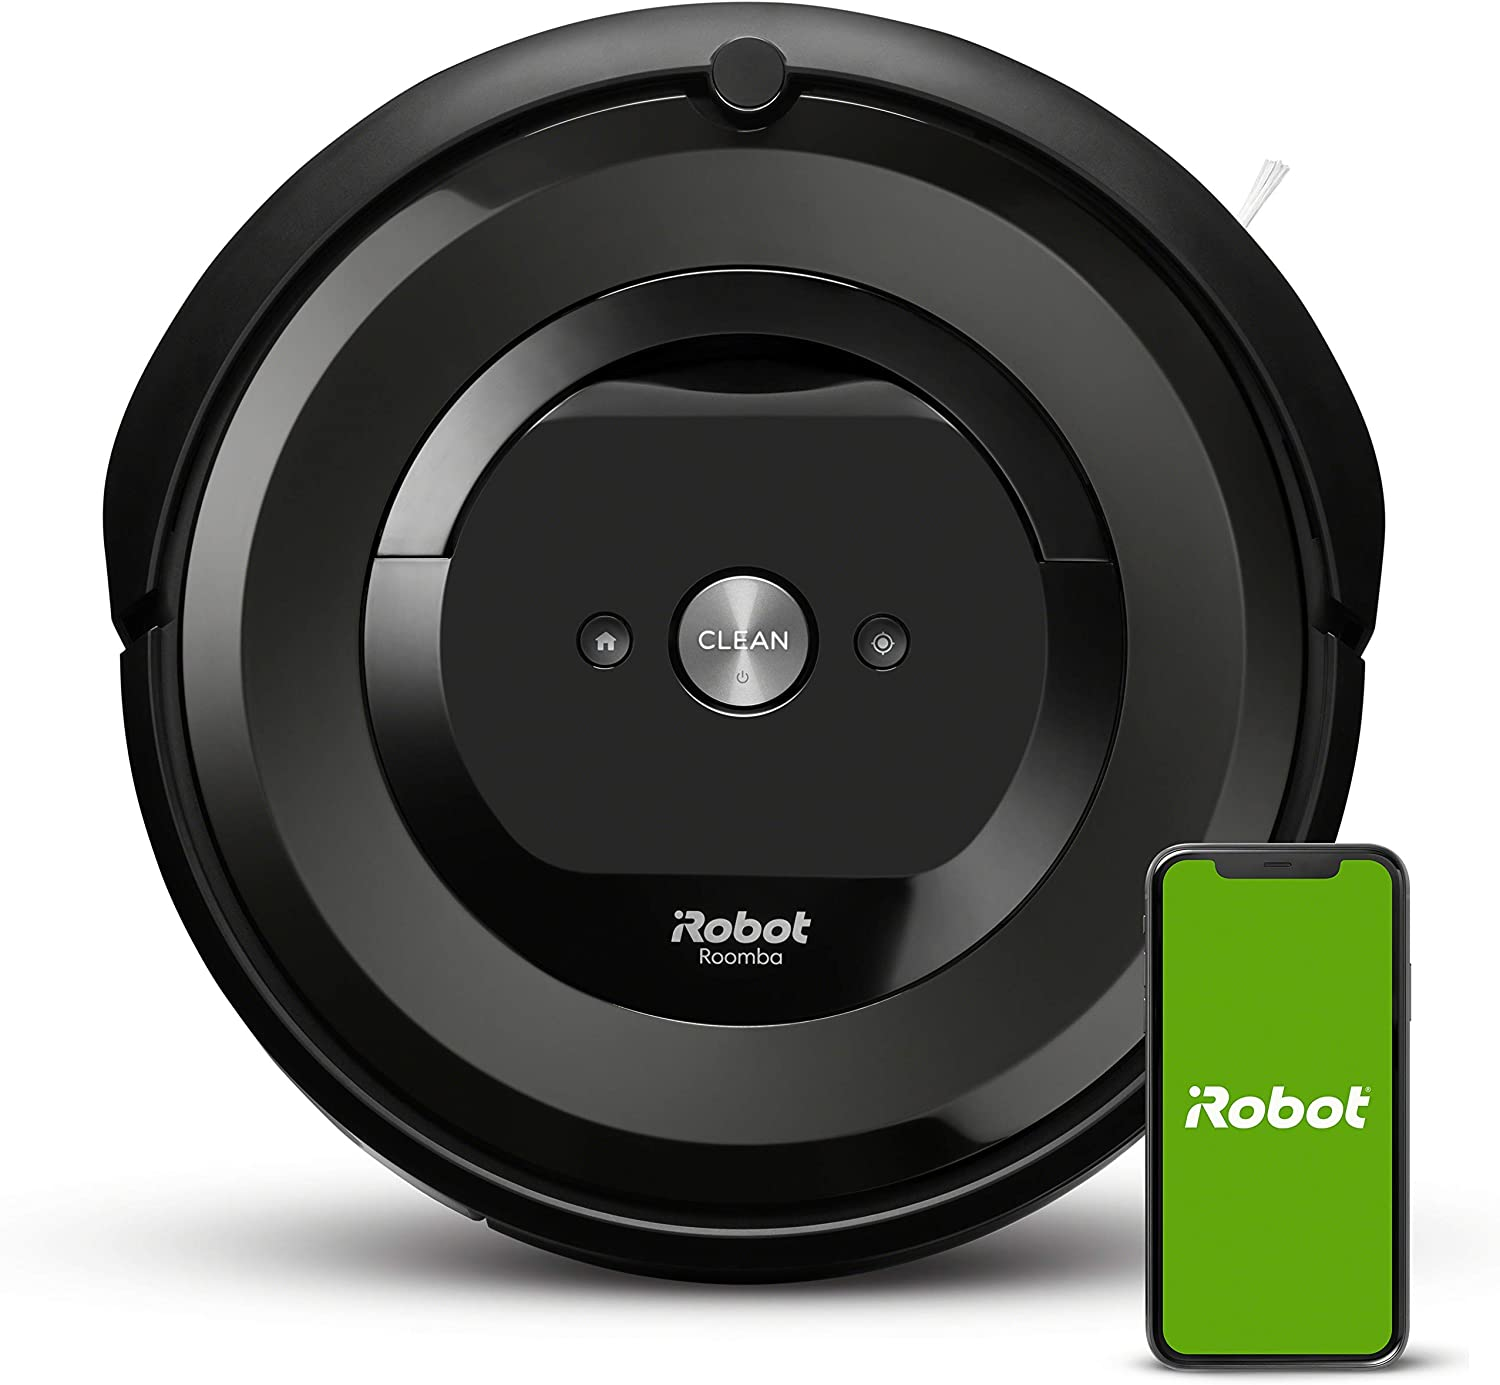 iRobot Clearance SALE Limited Max 47% OFF time Roomba E5 5150 Robot Vacuum - Connected wi Works Wi-Fi